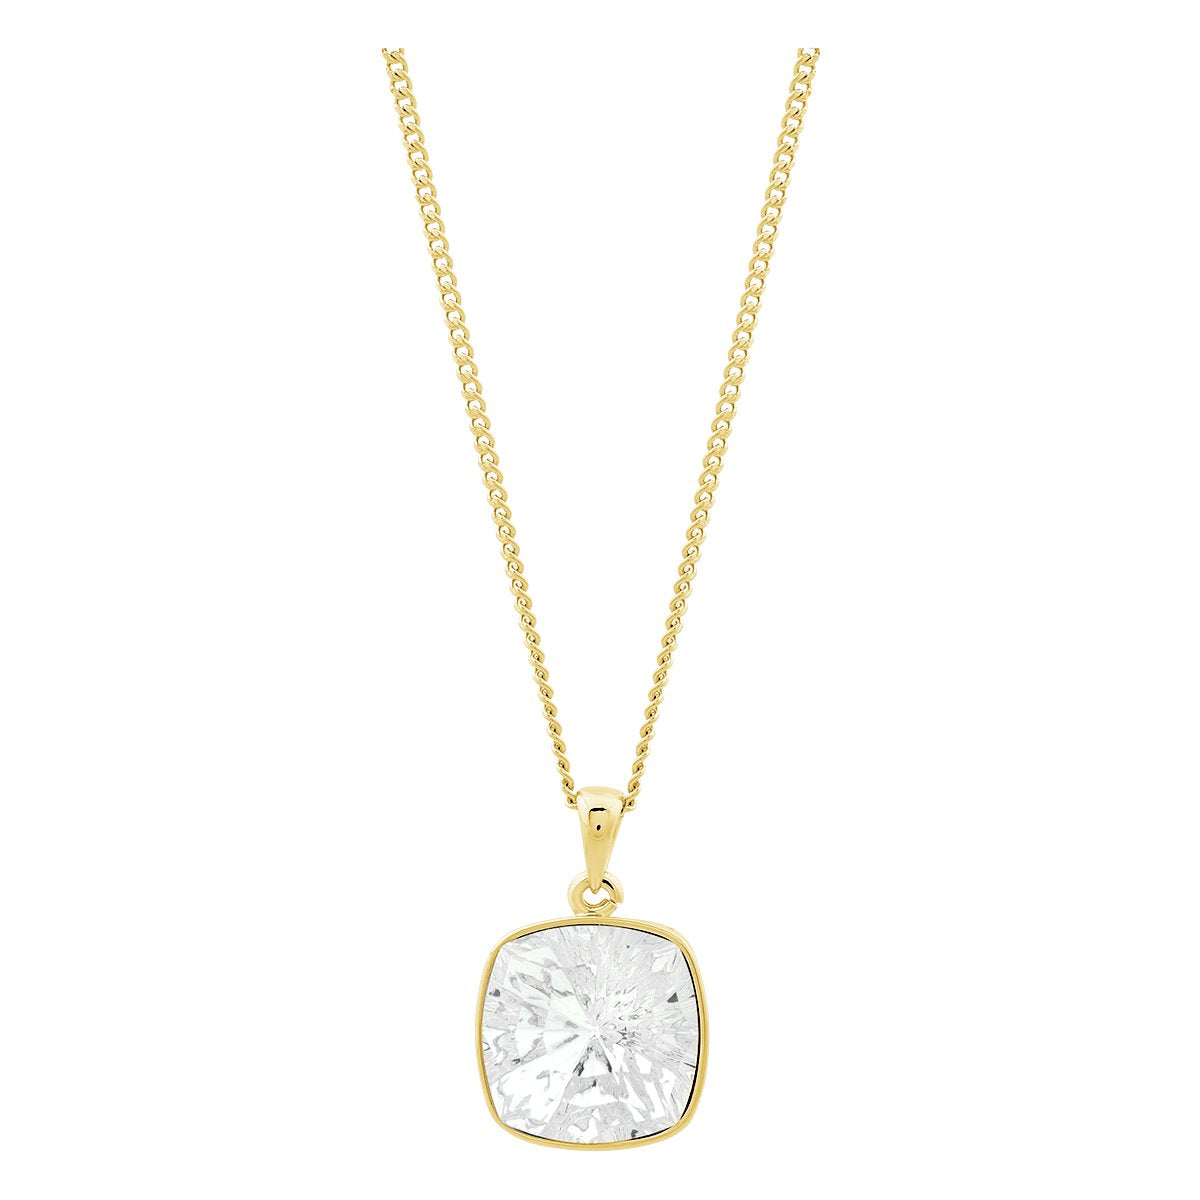 Louvre Pendant Gold Crystal JOY OF SPARKLE FOREVER CRYSTALS